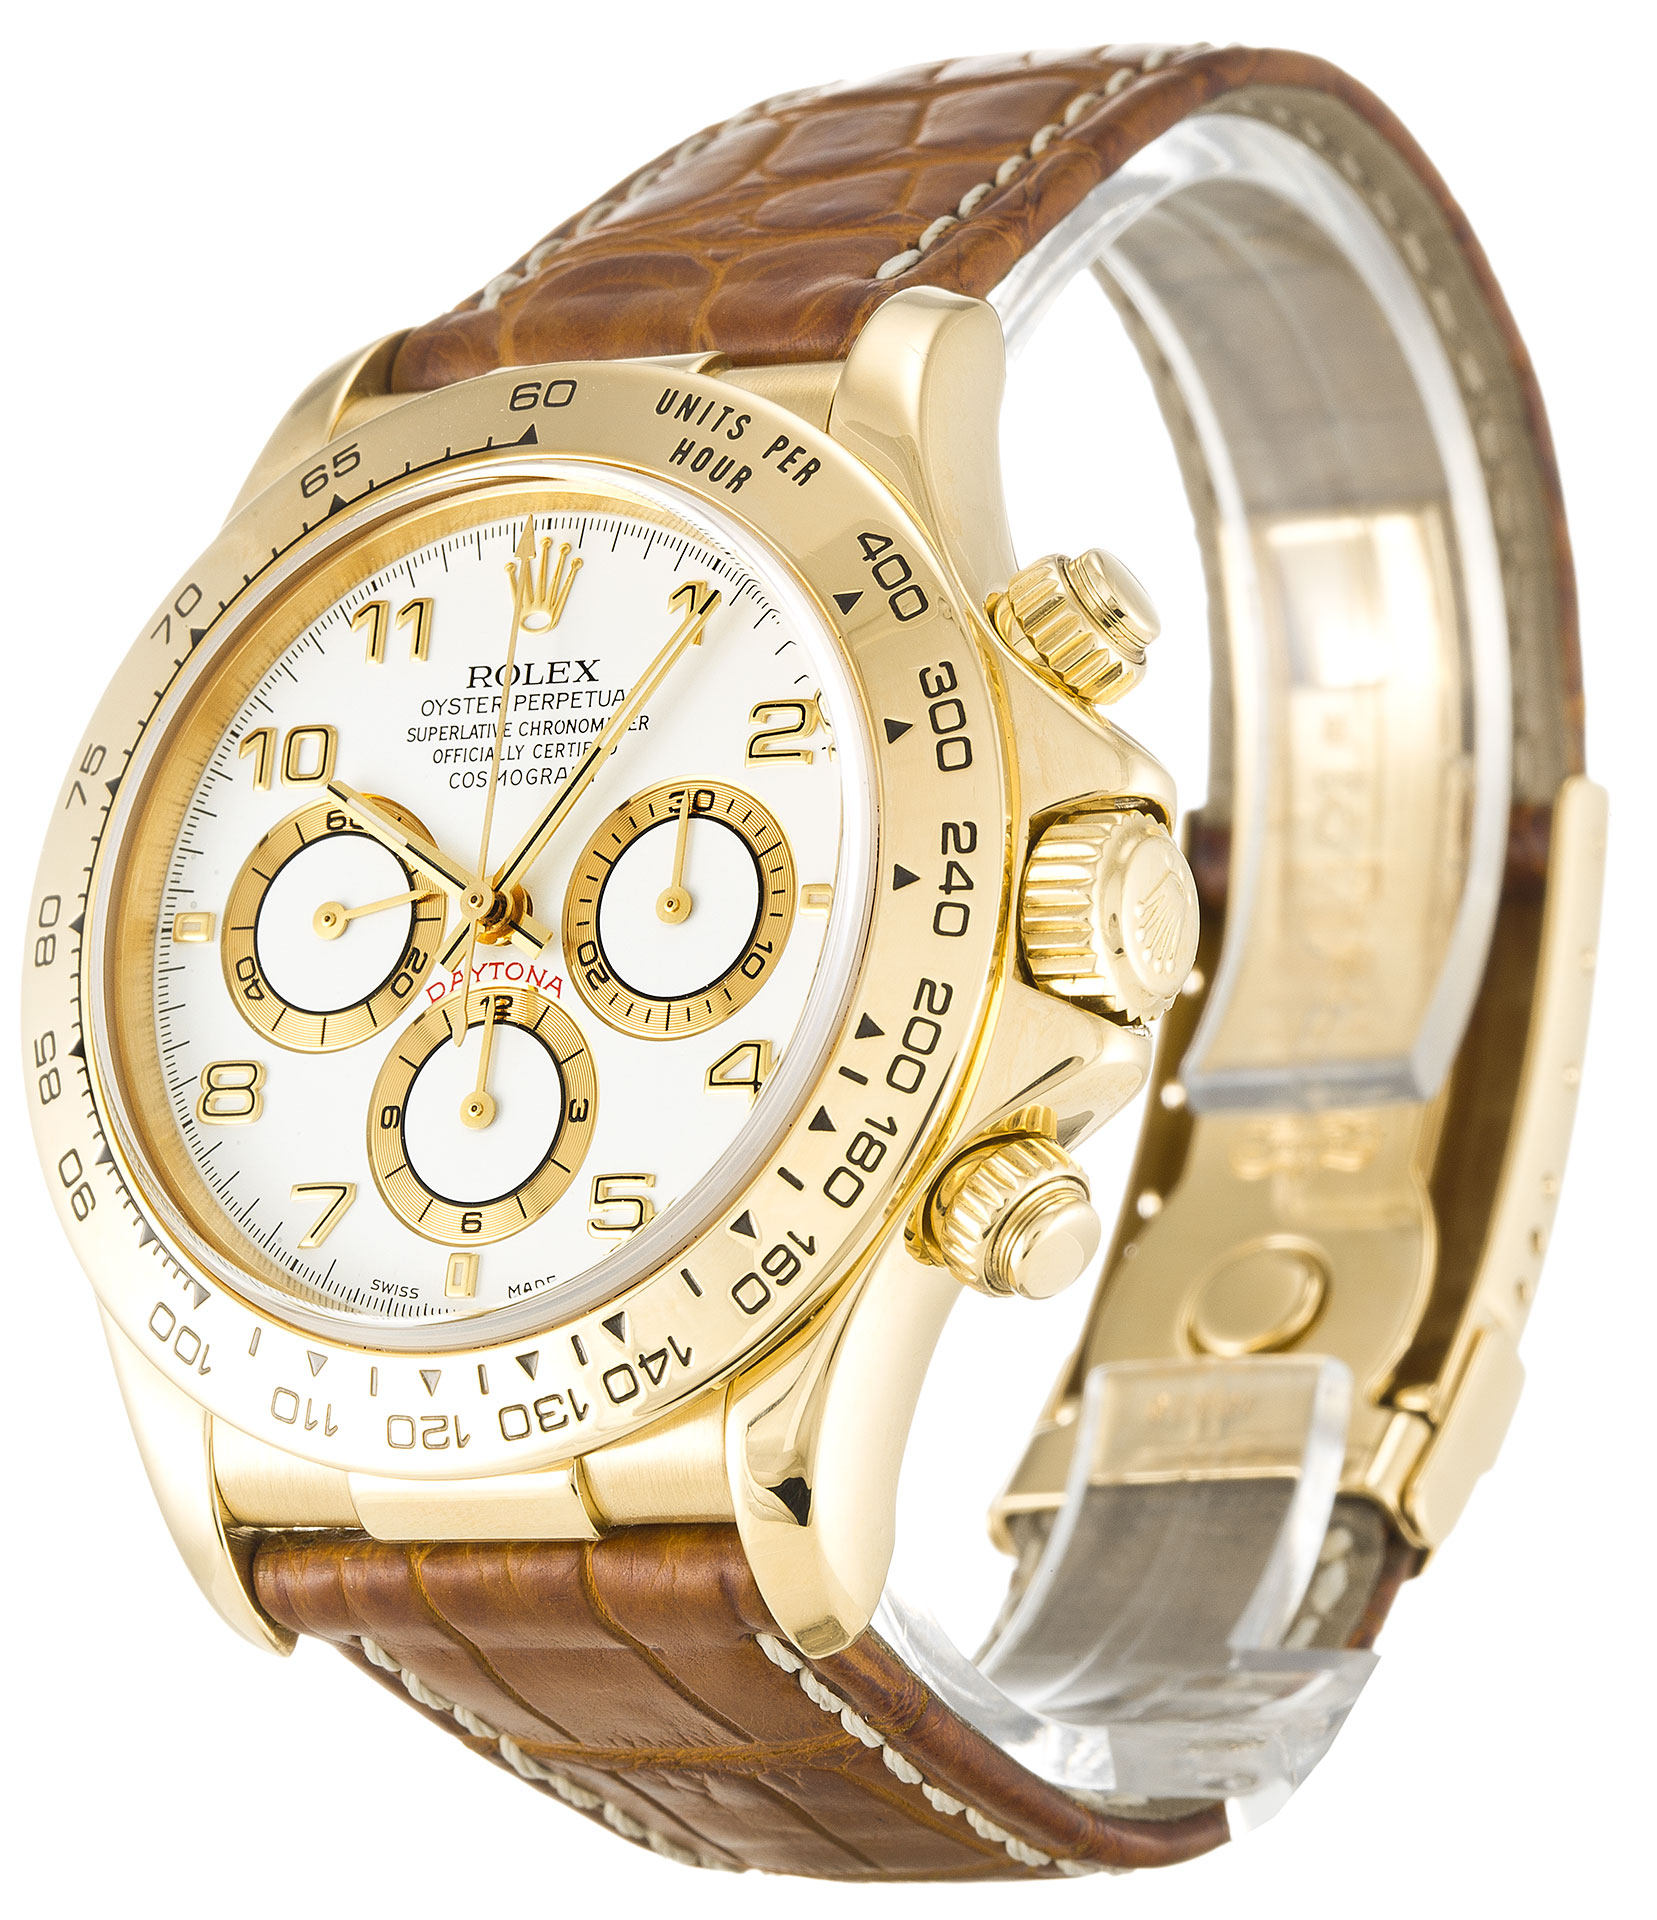 40MM Yellow Gold Rolex Daytona Replica Dial